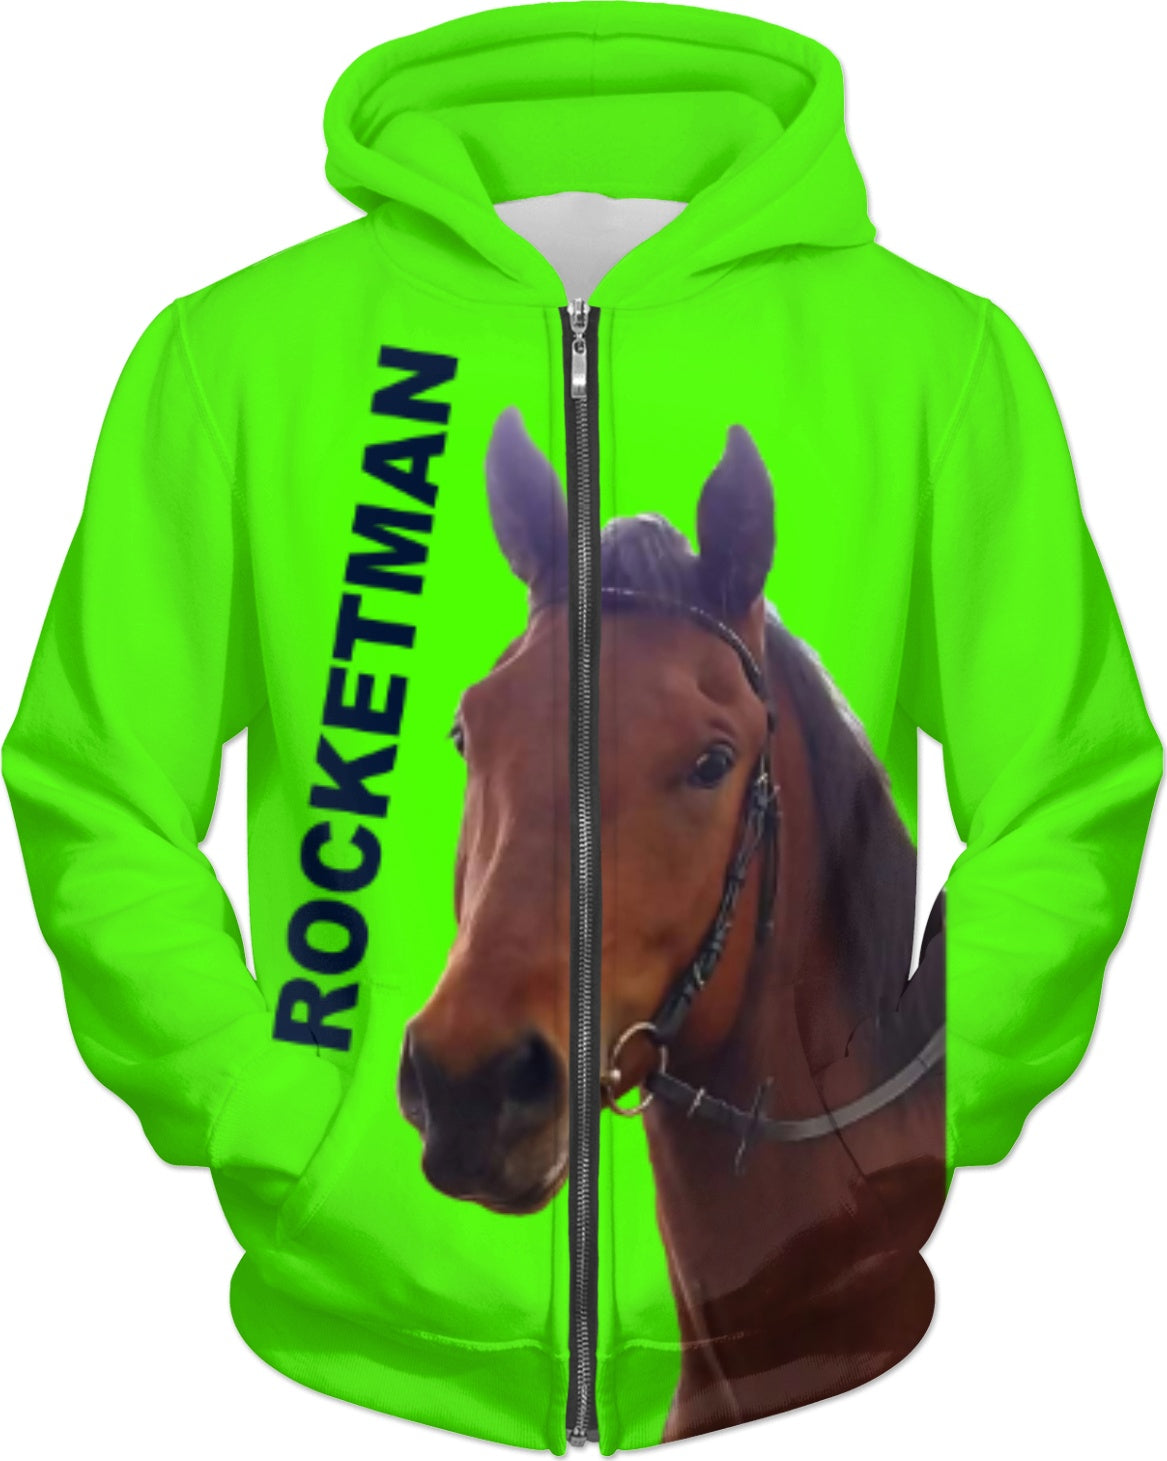 Rocketman Green - The Horse Barn